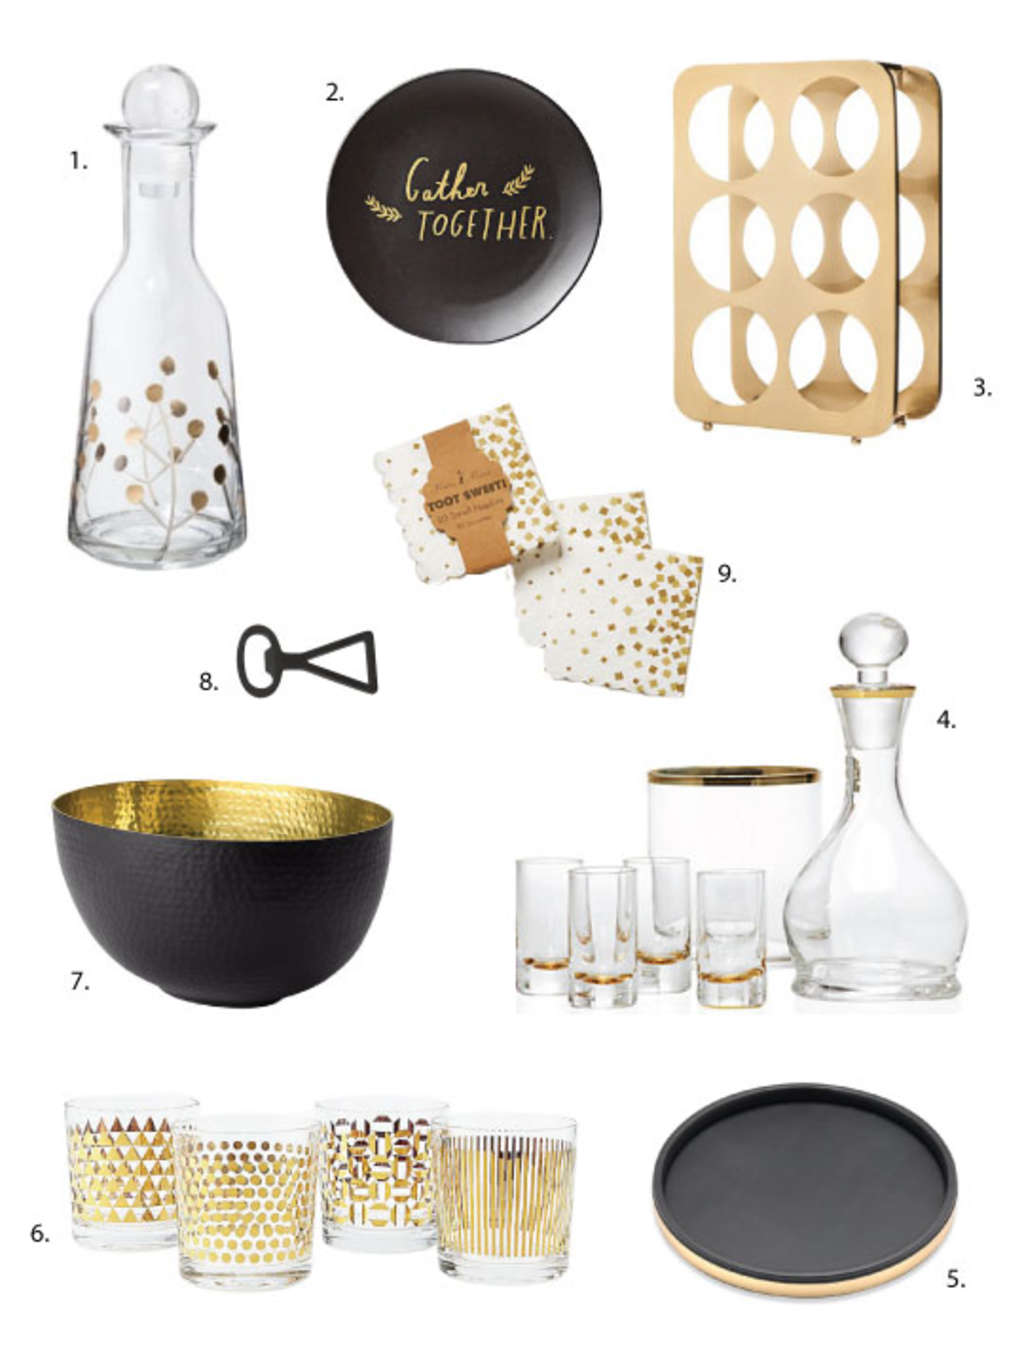 Holiday Home Trends: Matte Black & Shiny Gold Accessories for Under $25